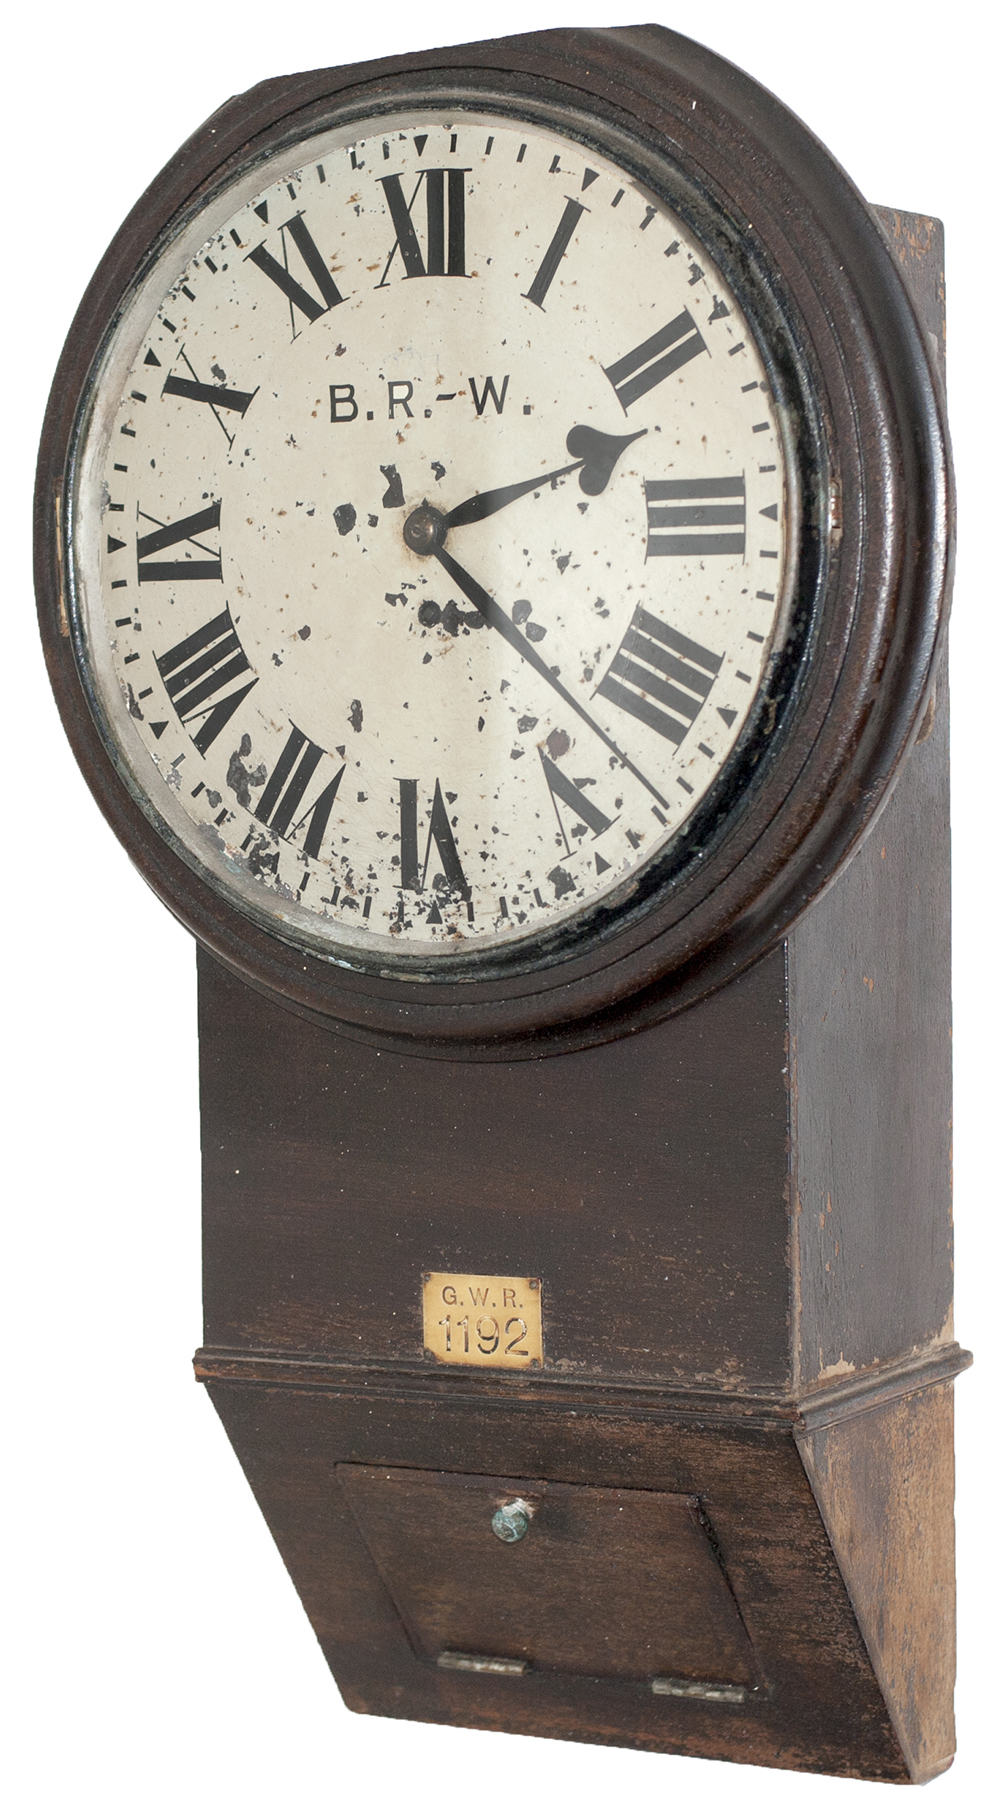 Lot 384 - Great Western Railway 12 inch teak cased drop dial chisel bottom fusee railway clock with a large